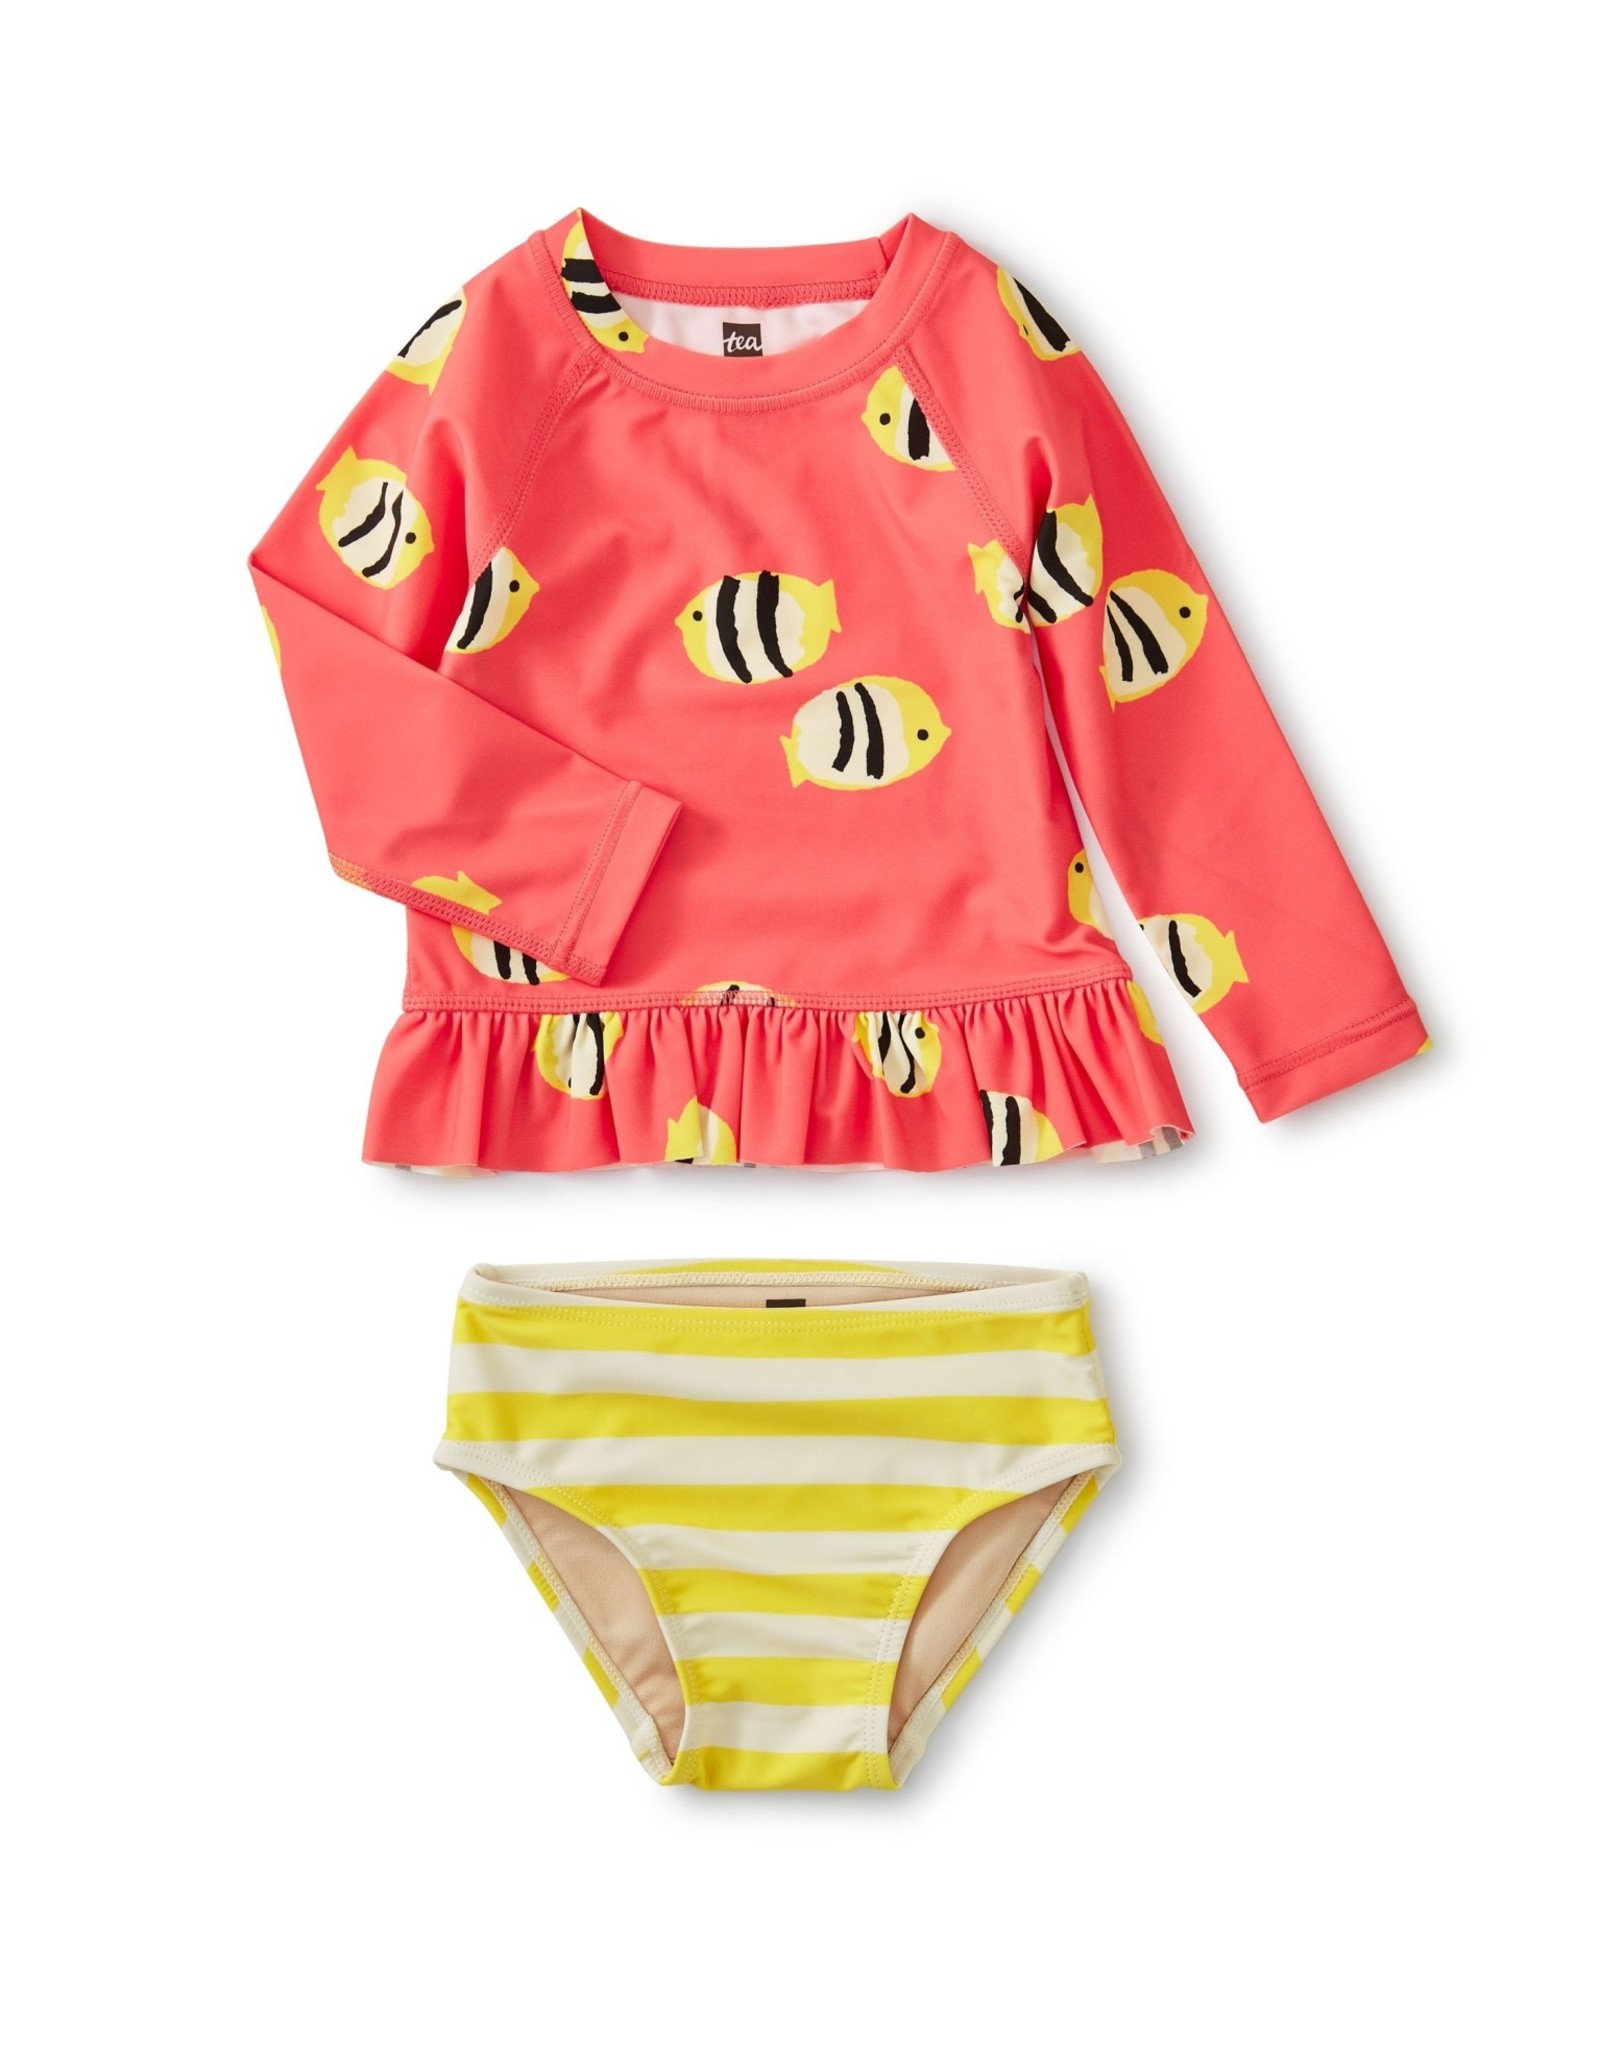 Tea Ruffle Rash Guard Set